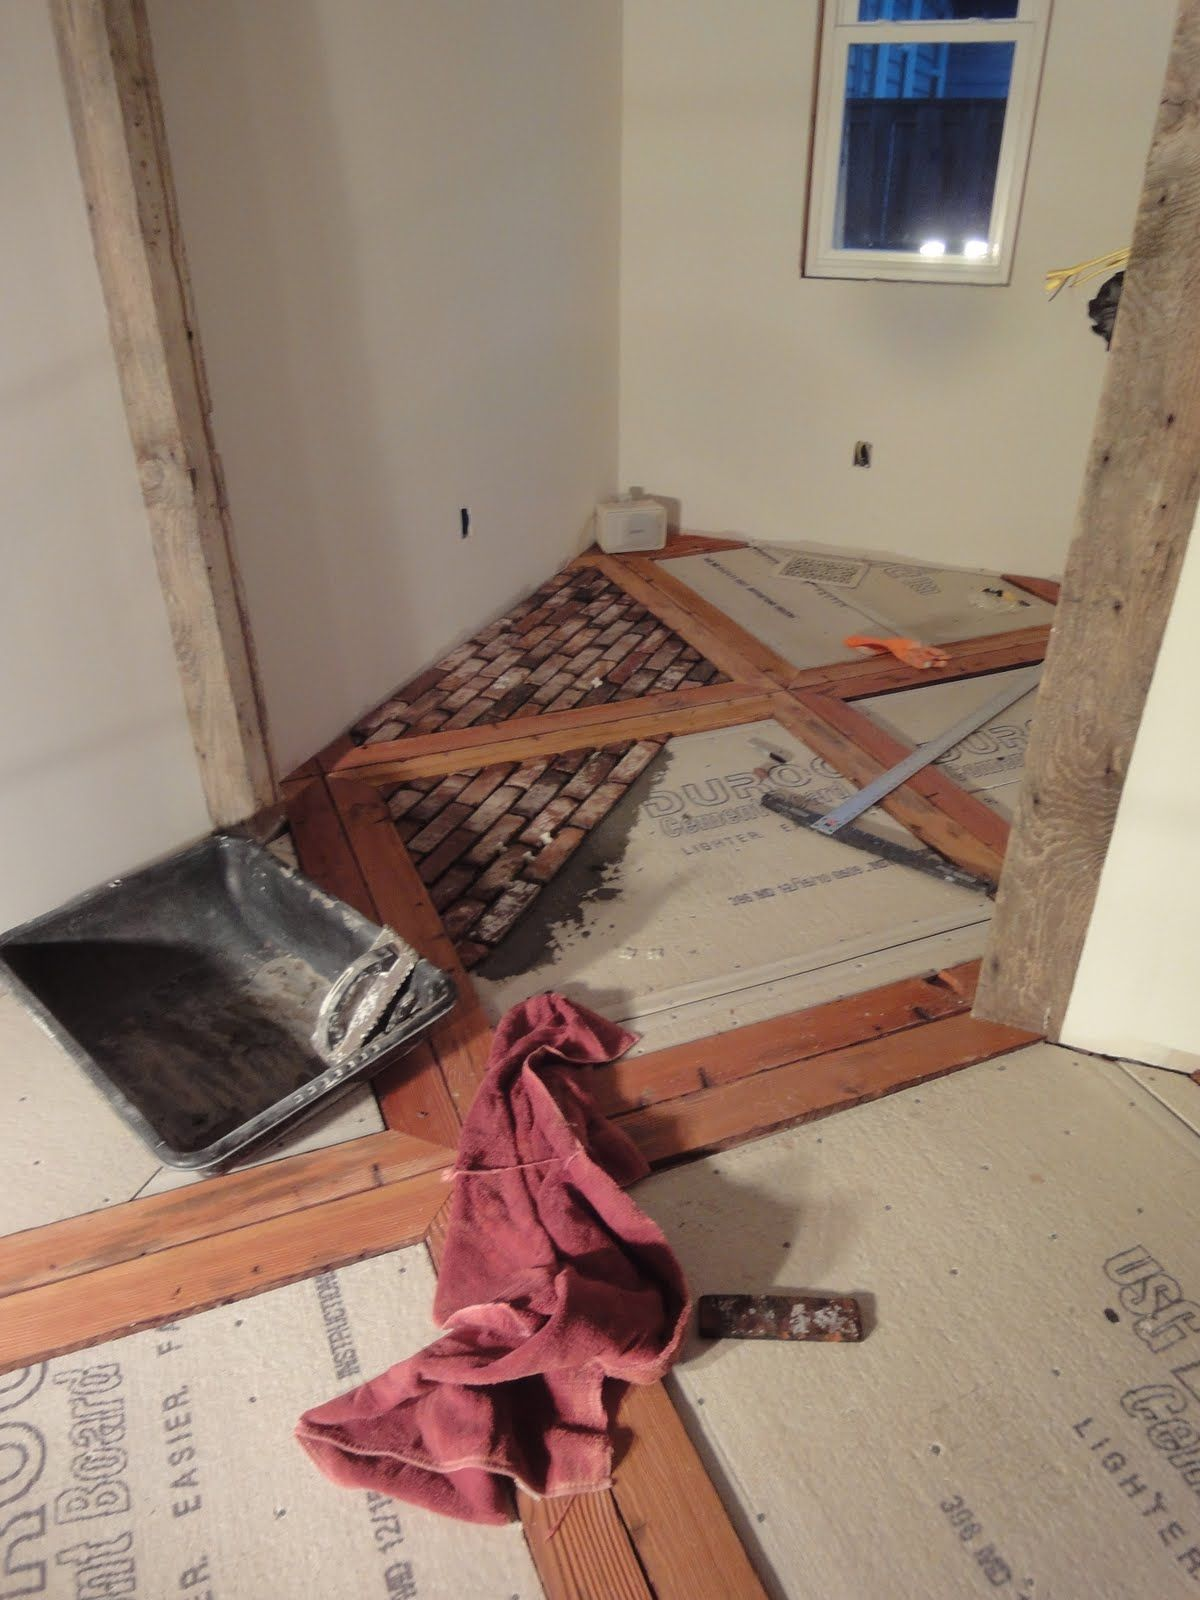 Sandblasted 2x4 And Brick Floor Diy Not A Good Link As Of Right Now But A Good Visual I Guess Diy Flooring Diy Wood Floors Diy Kitchen Flooring